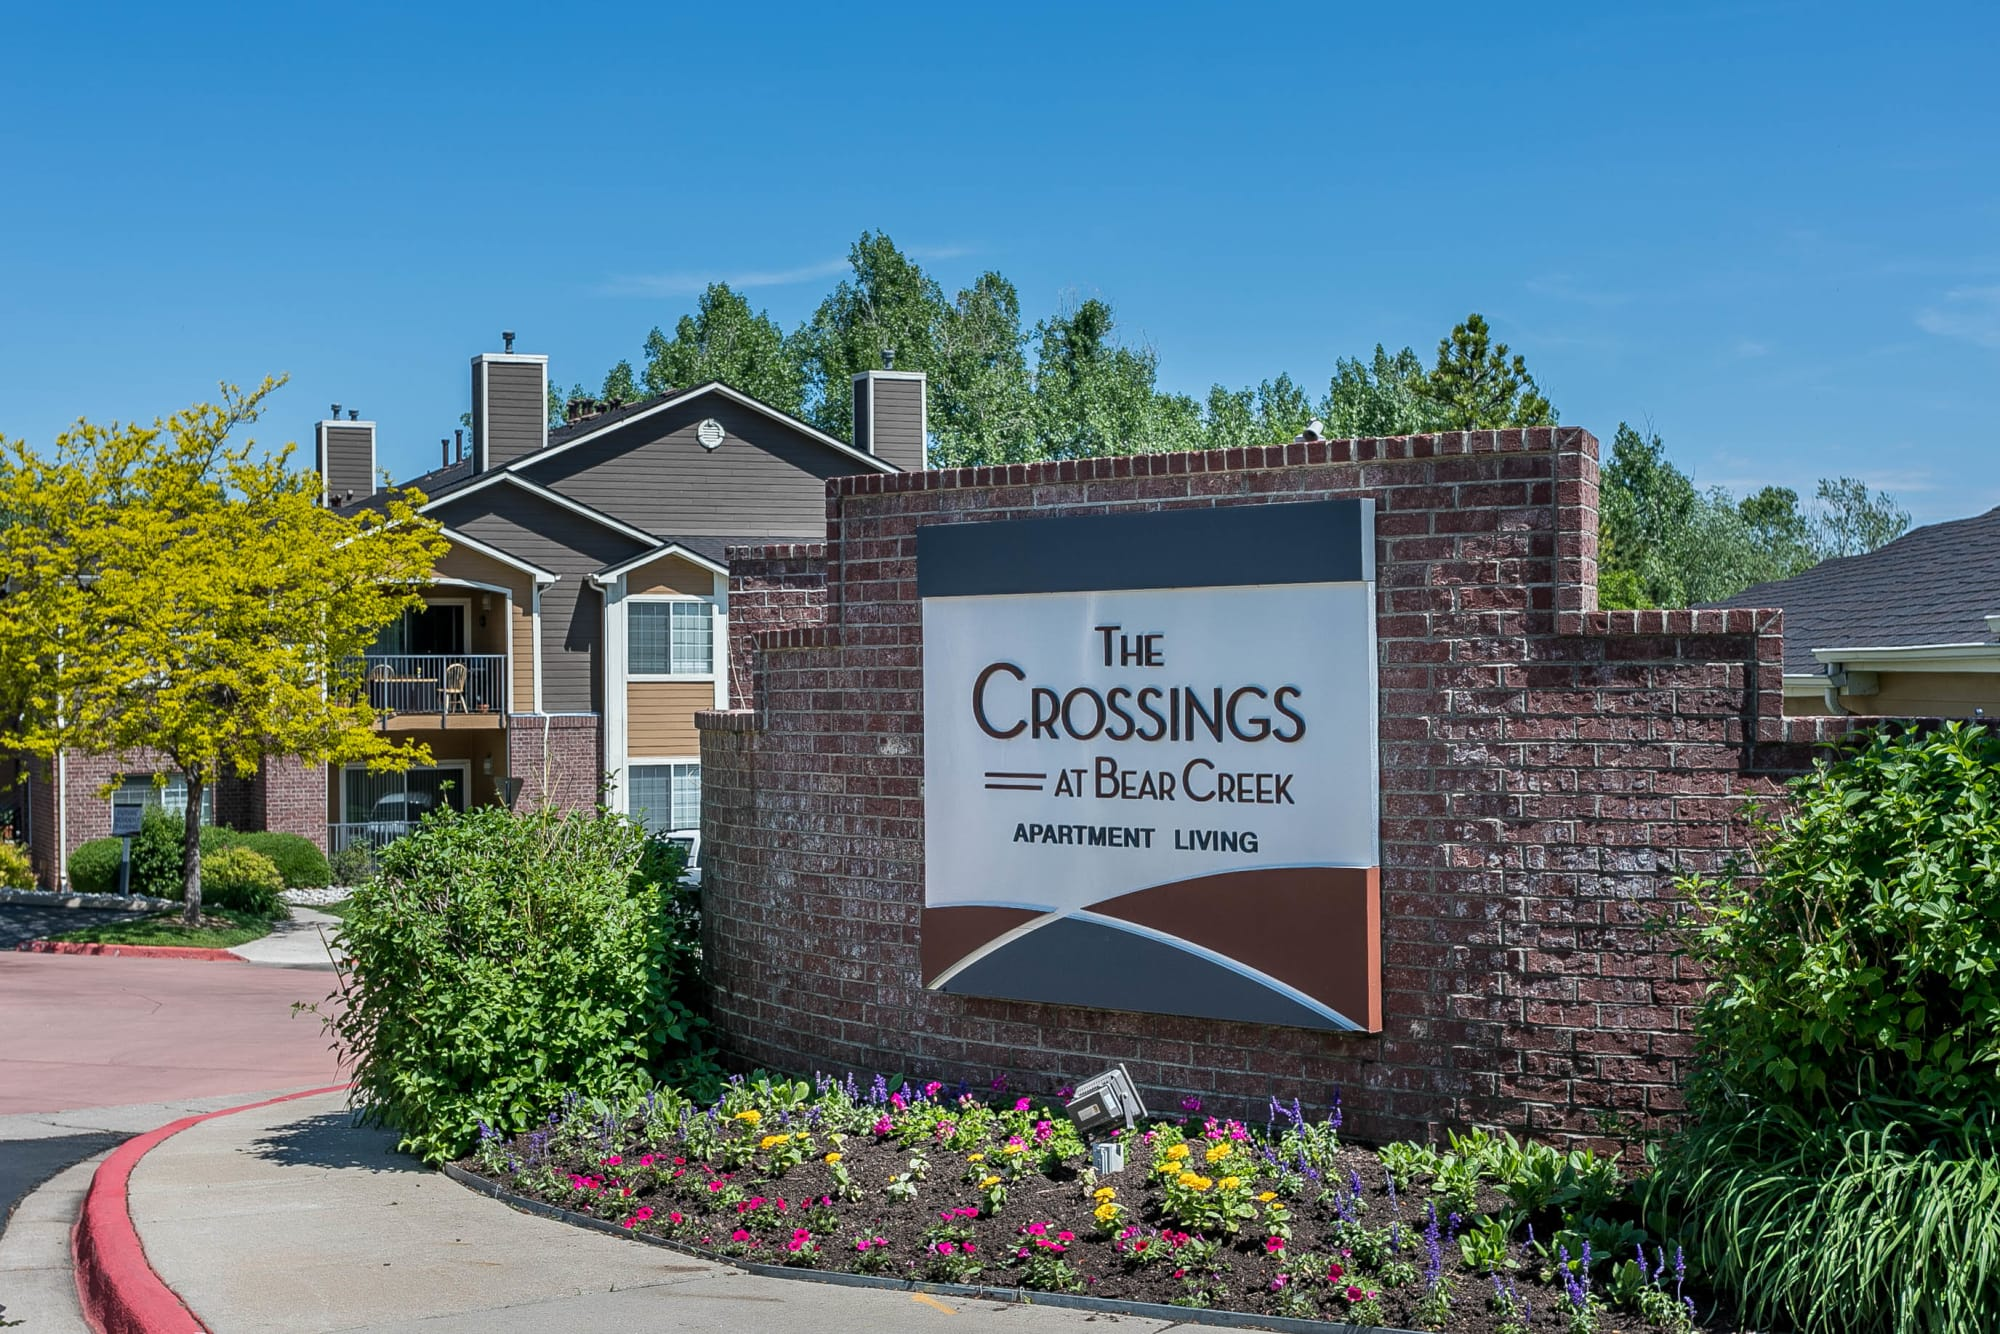 The monument sign at The Crossings at Bear Creek Apartments in Lakewood, Colorado